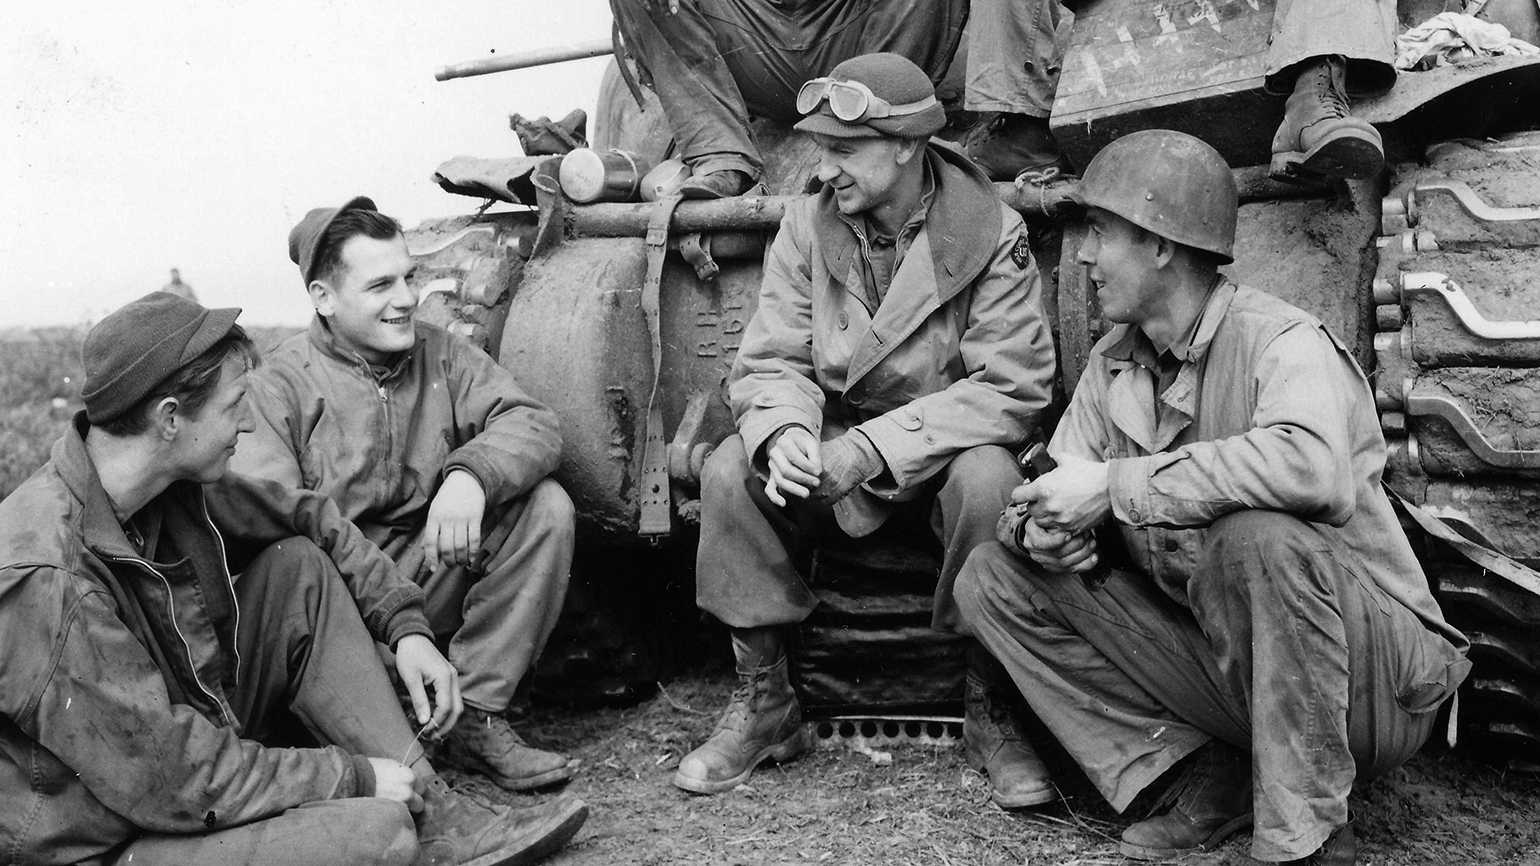 Ernie Pyle Courageously Chronicled the Soldier's Experience